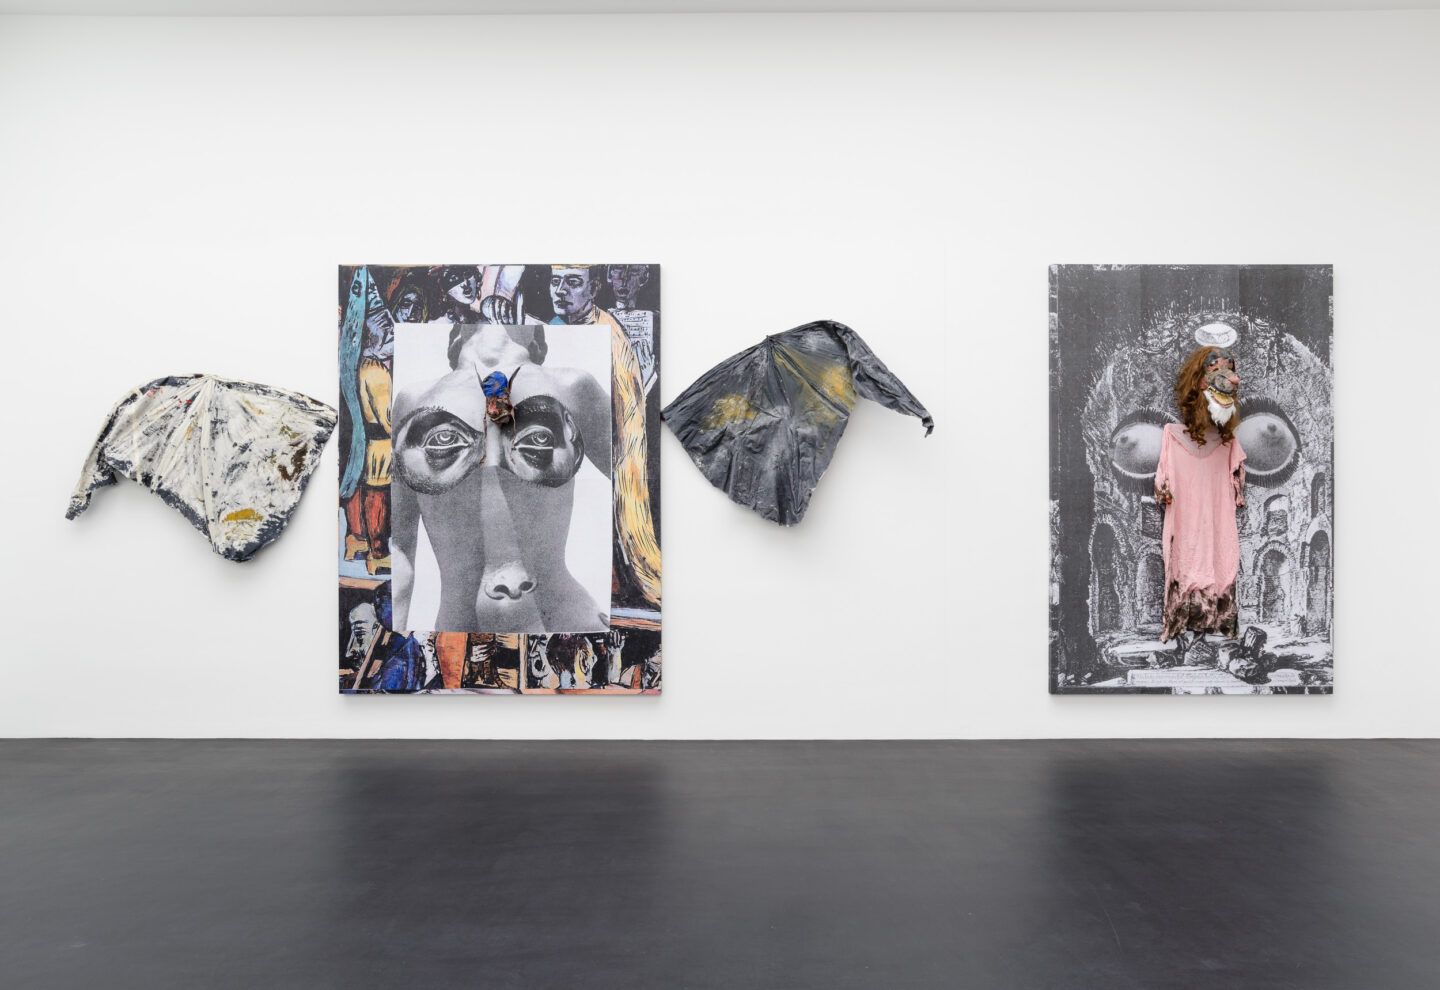 Exhibition View Monster Chetwynd Soloshow «Either This Coat's Inhabited or I'm Inhibited; Where is God (the Bat), 2019 and Splinter, 2019» at Galerie Gregor Staiger / Courtesy: the artist and Galerie Gregor Staiger